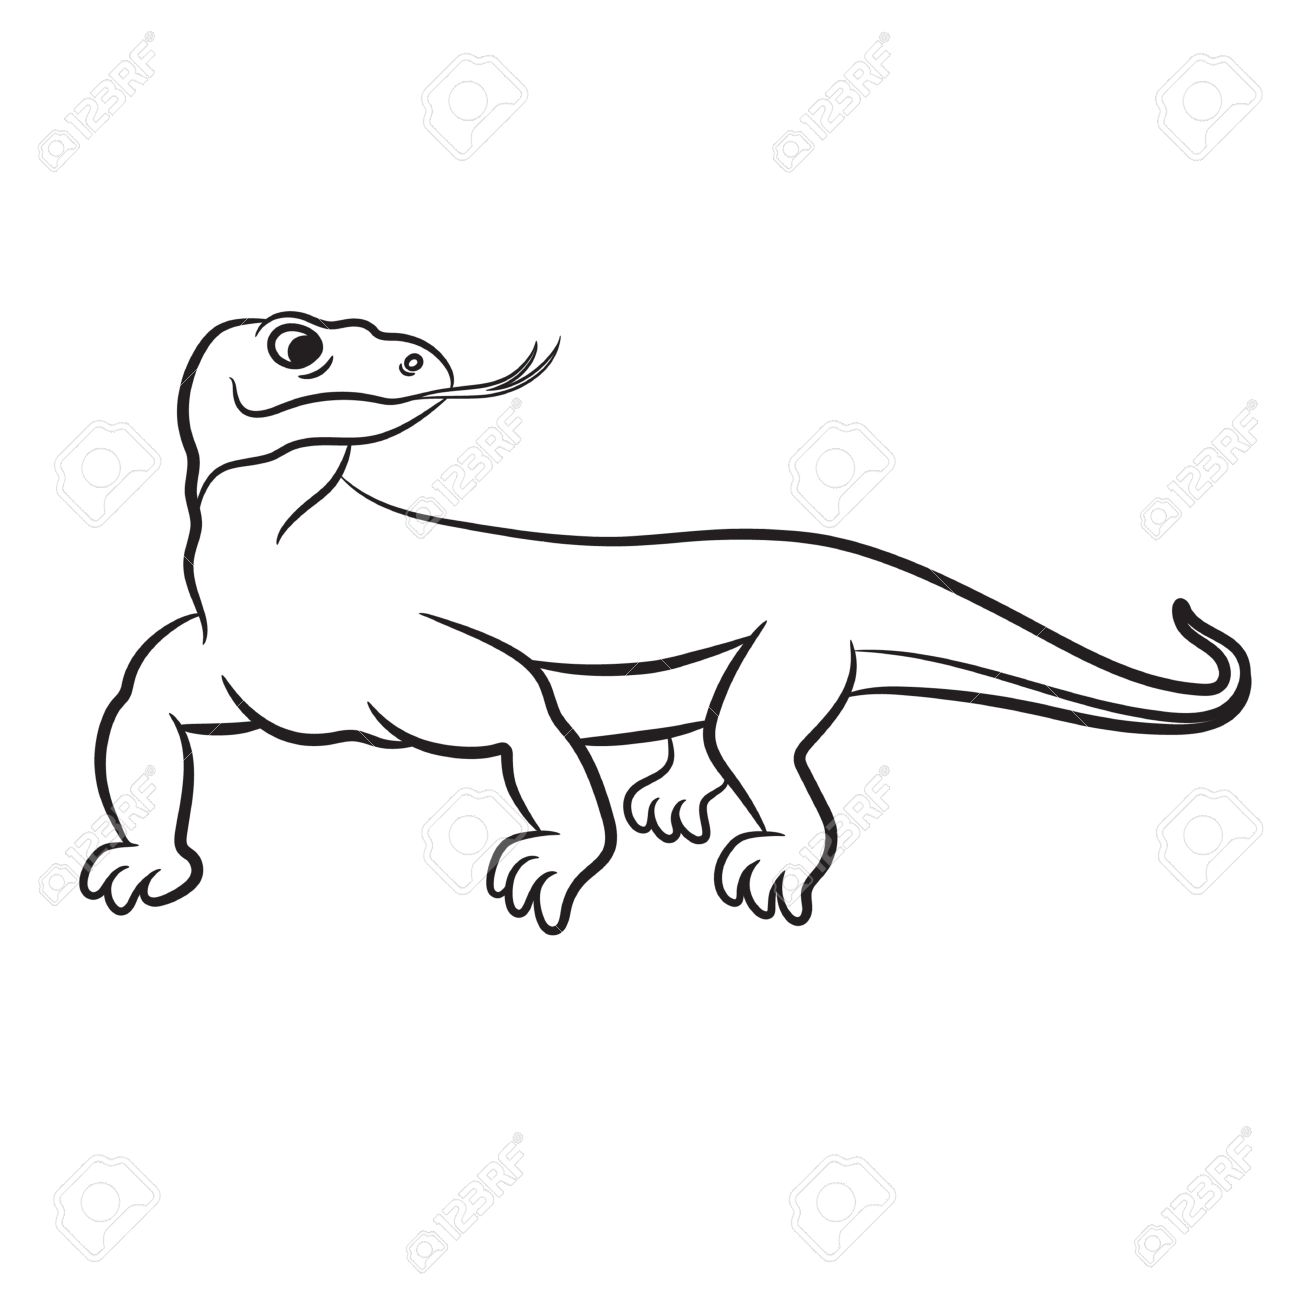 Outlined Varan (komodo Dragon) Vector Illustration. Isolated.